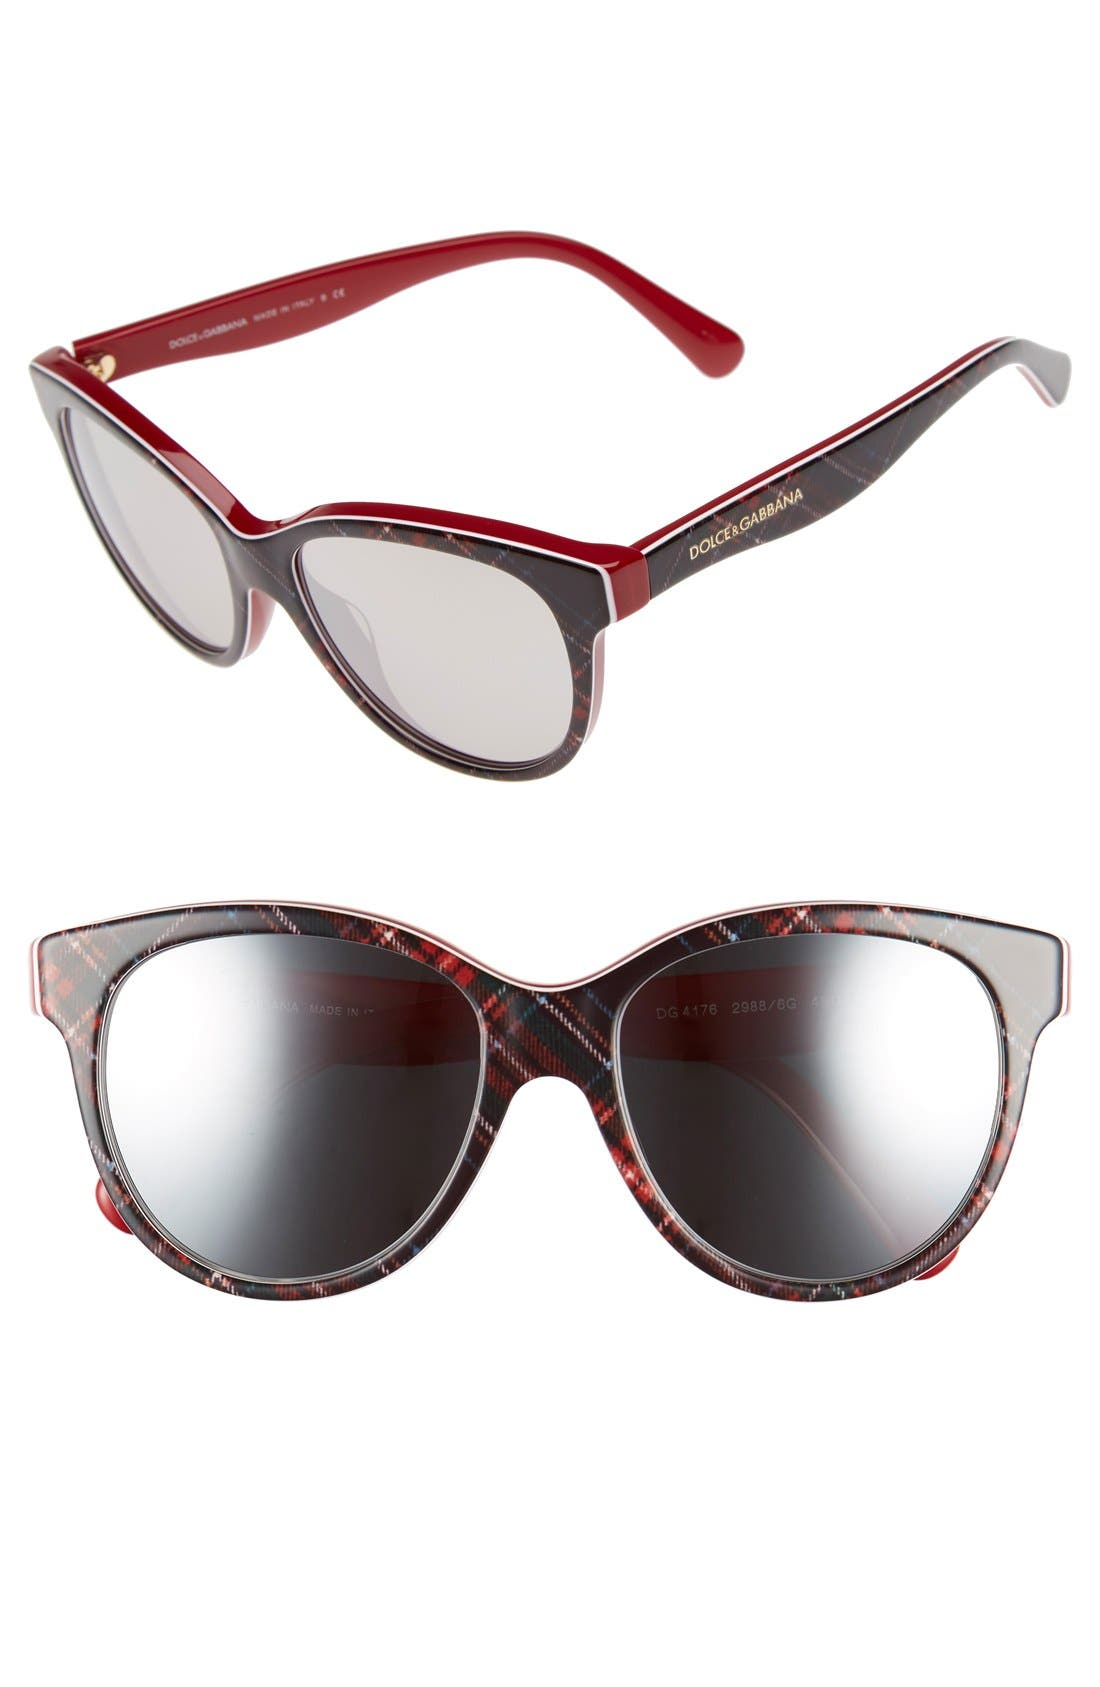 DOLCE&GABBANA 49mm Retro Sunglasses